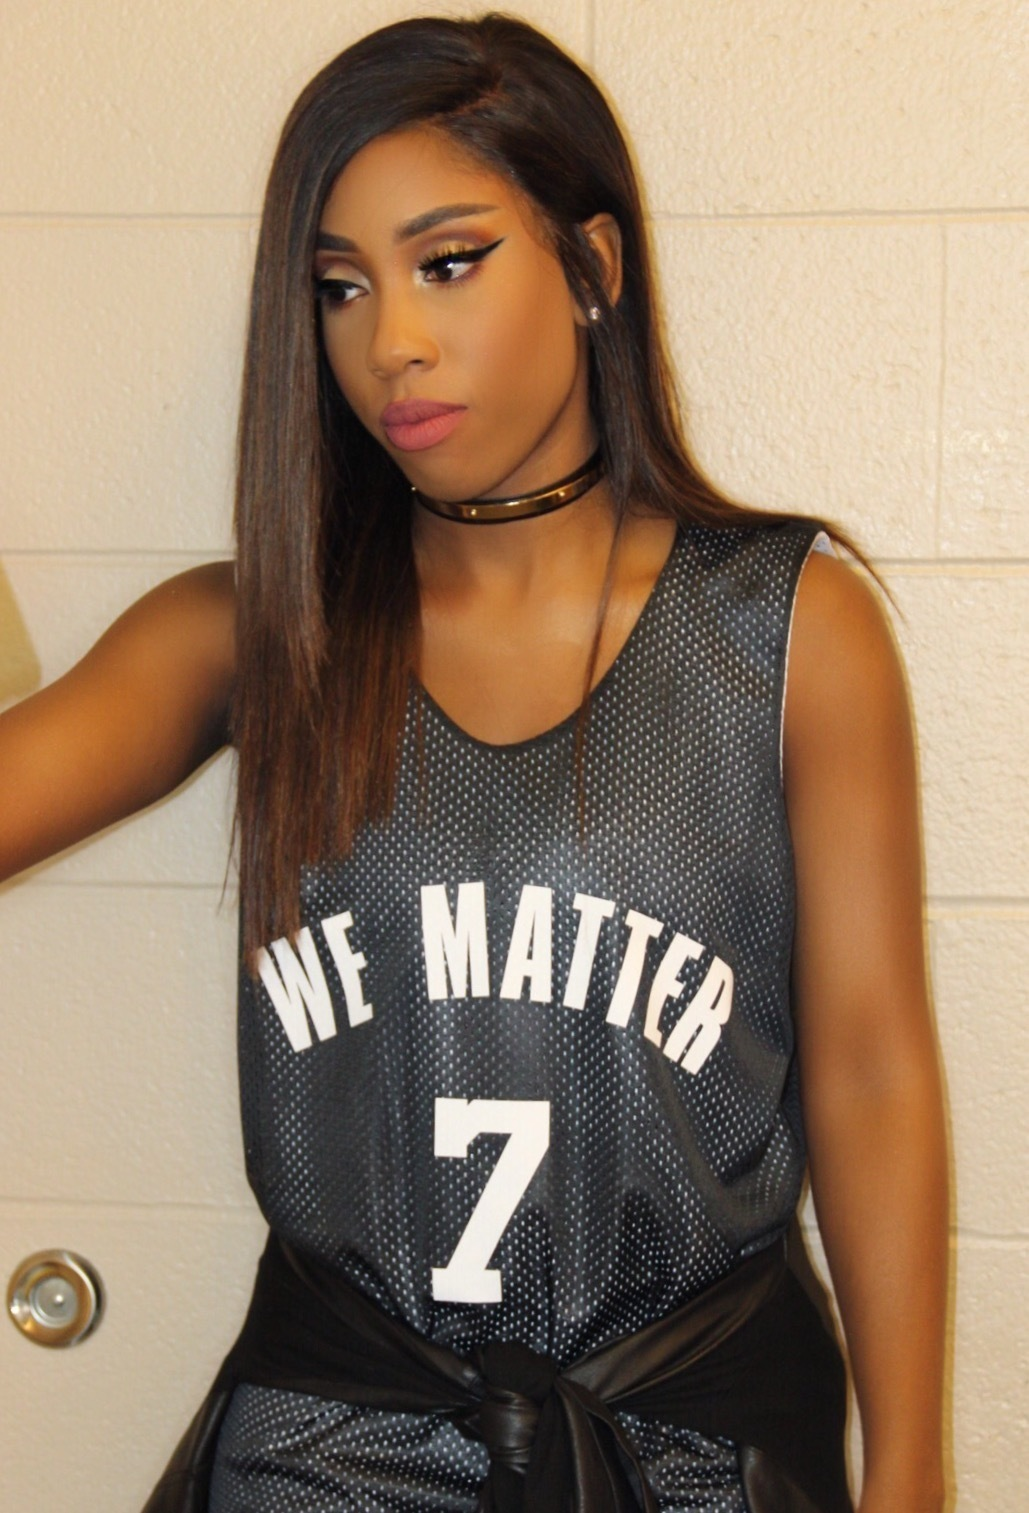 This photo provided by Atlantic Records shows Sevyn Streeter at an arena for an NBA basketball game between the Philadelphia 76ers and Oklahoma City Thunder in Philadelphia on Oct. 26, 2016.